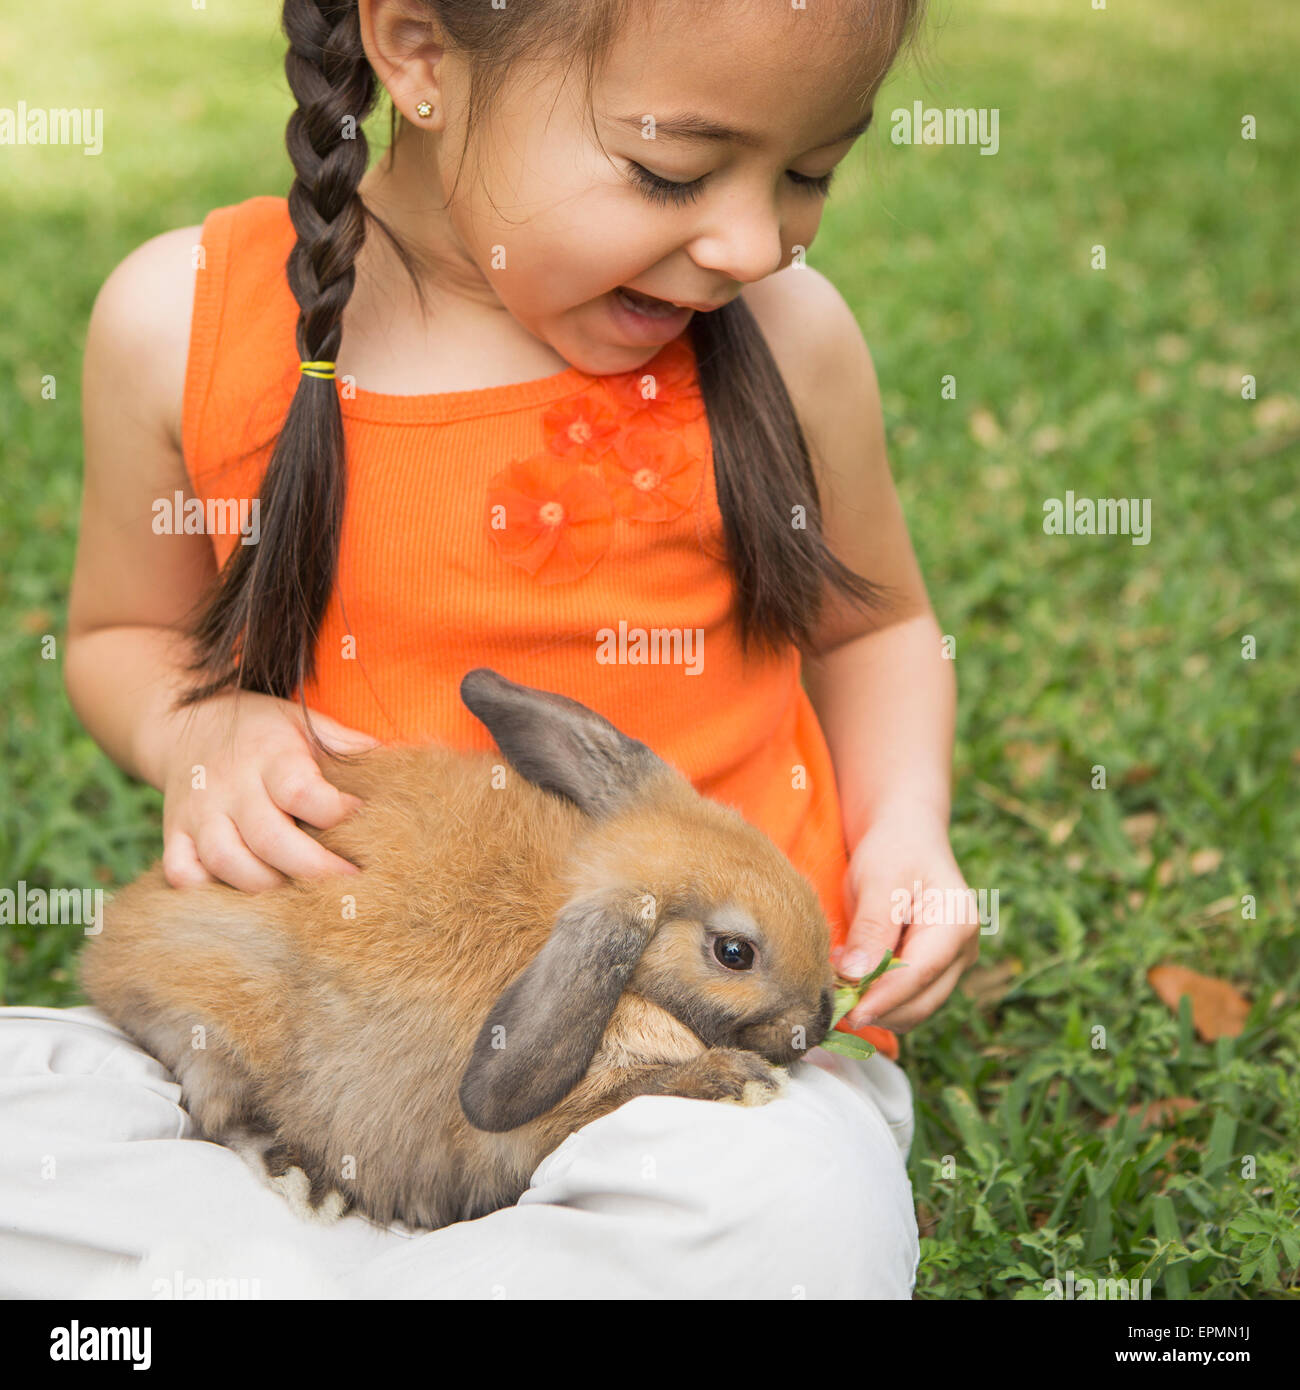 A child with a brown rabbit on her lap. - Stock Image